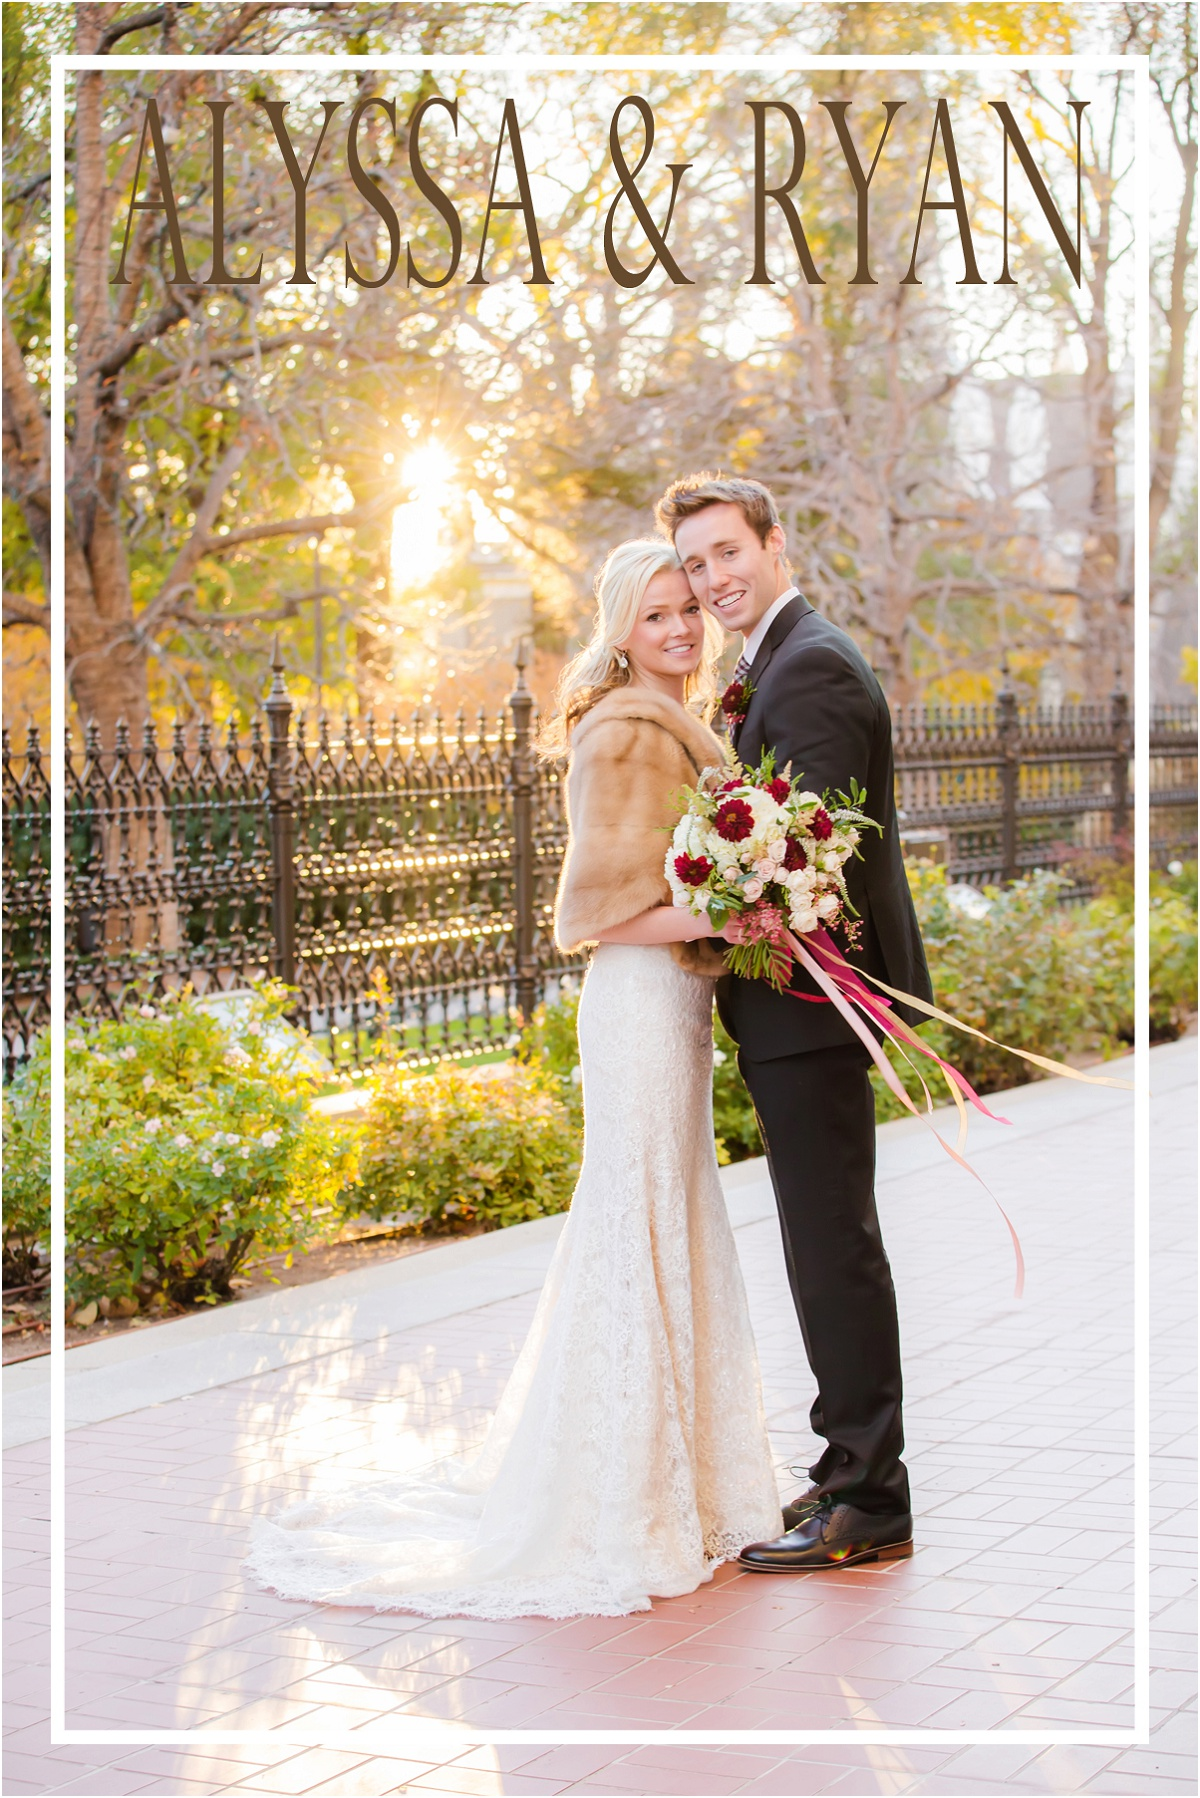 Terra Cooper Photography Weddings Brides 2015_5384.jpg